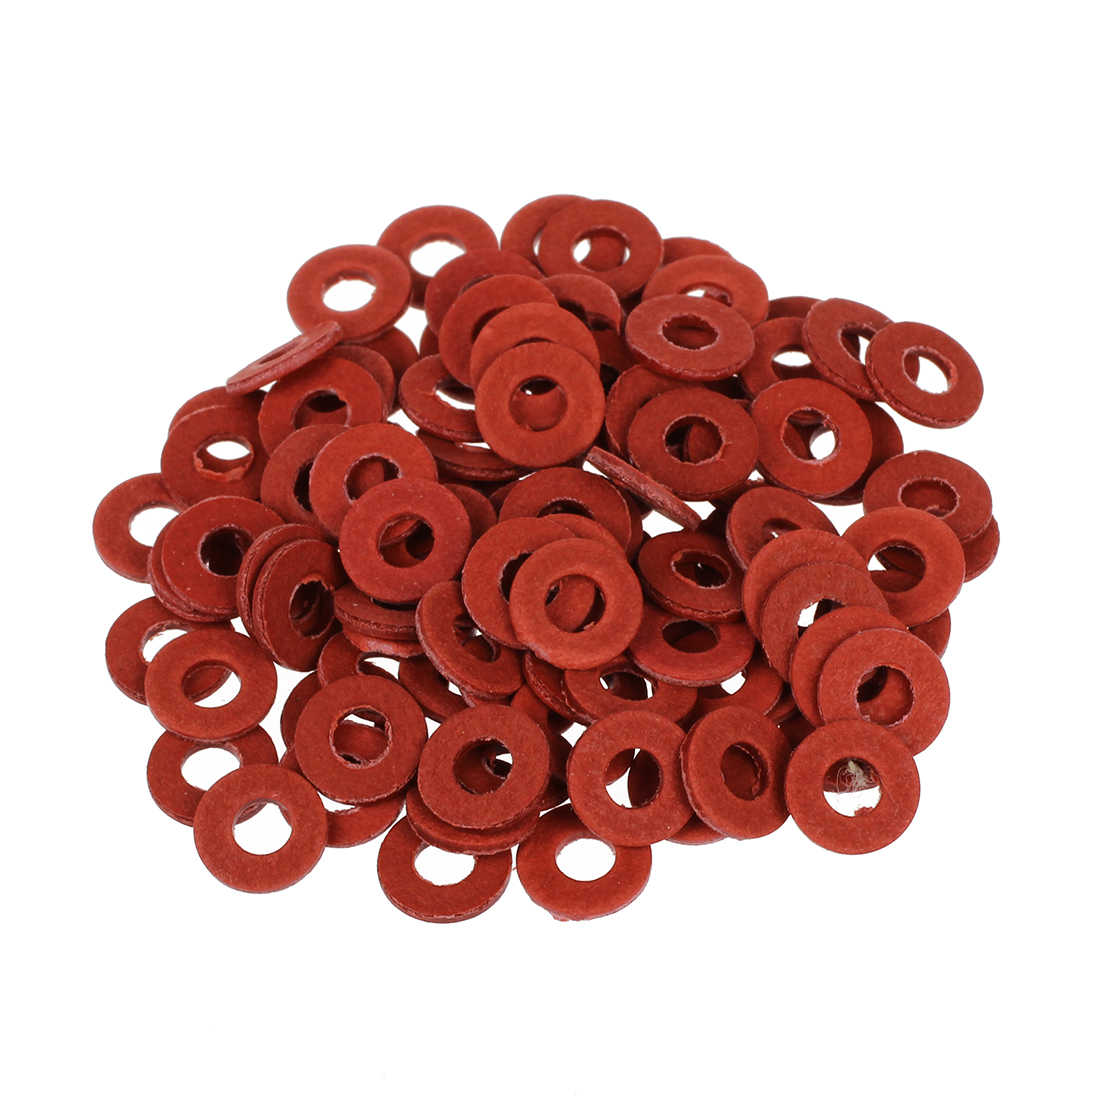 JFBL Hot sale New Hot Sale 100 Pcs Practical Red Motherboard Screw Insulating Fiber Washers